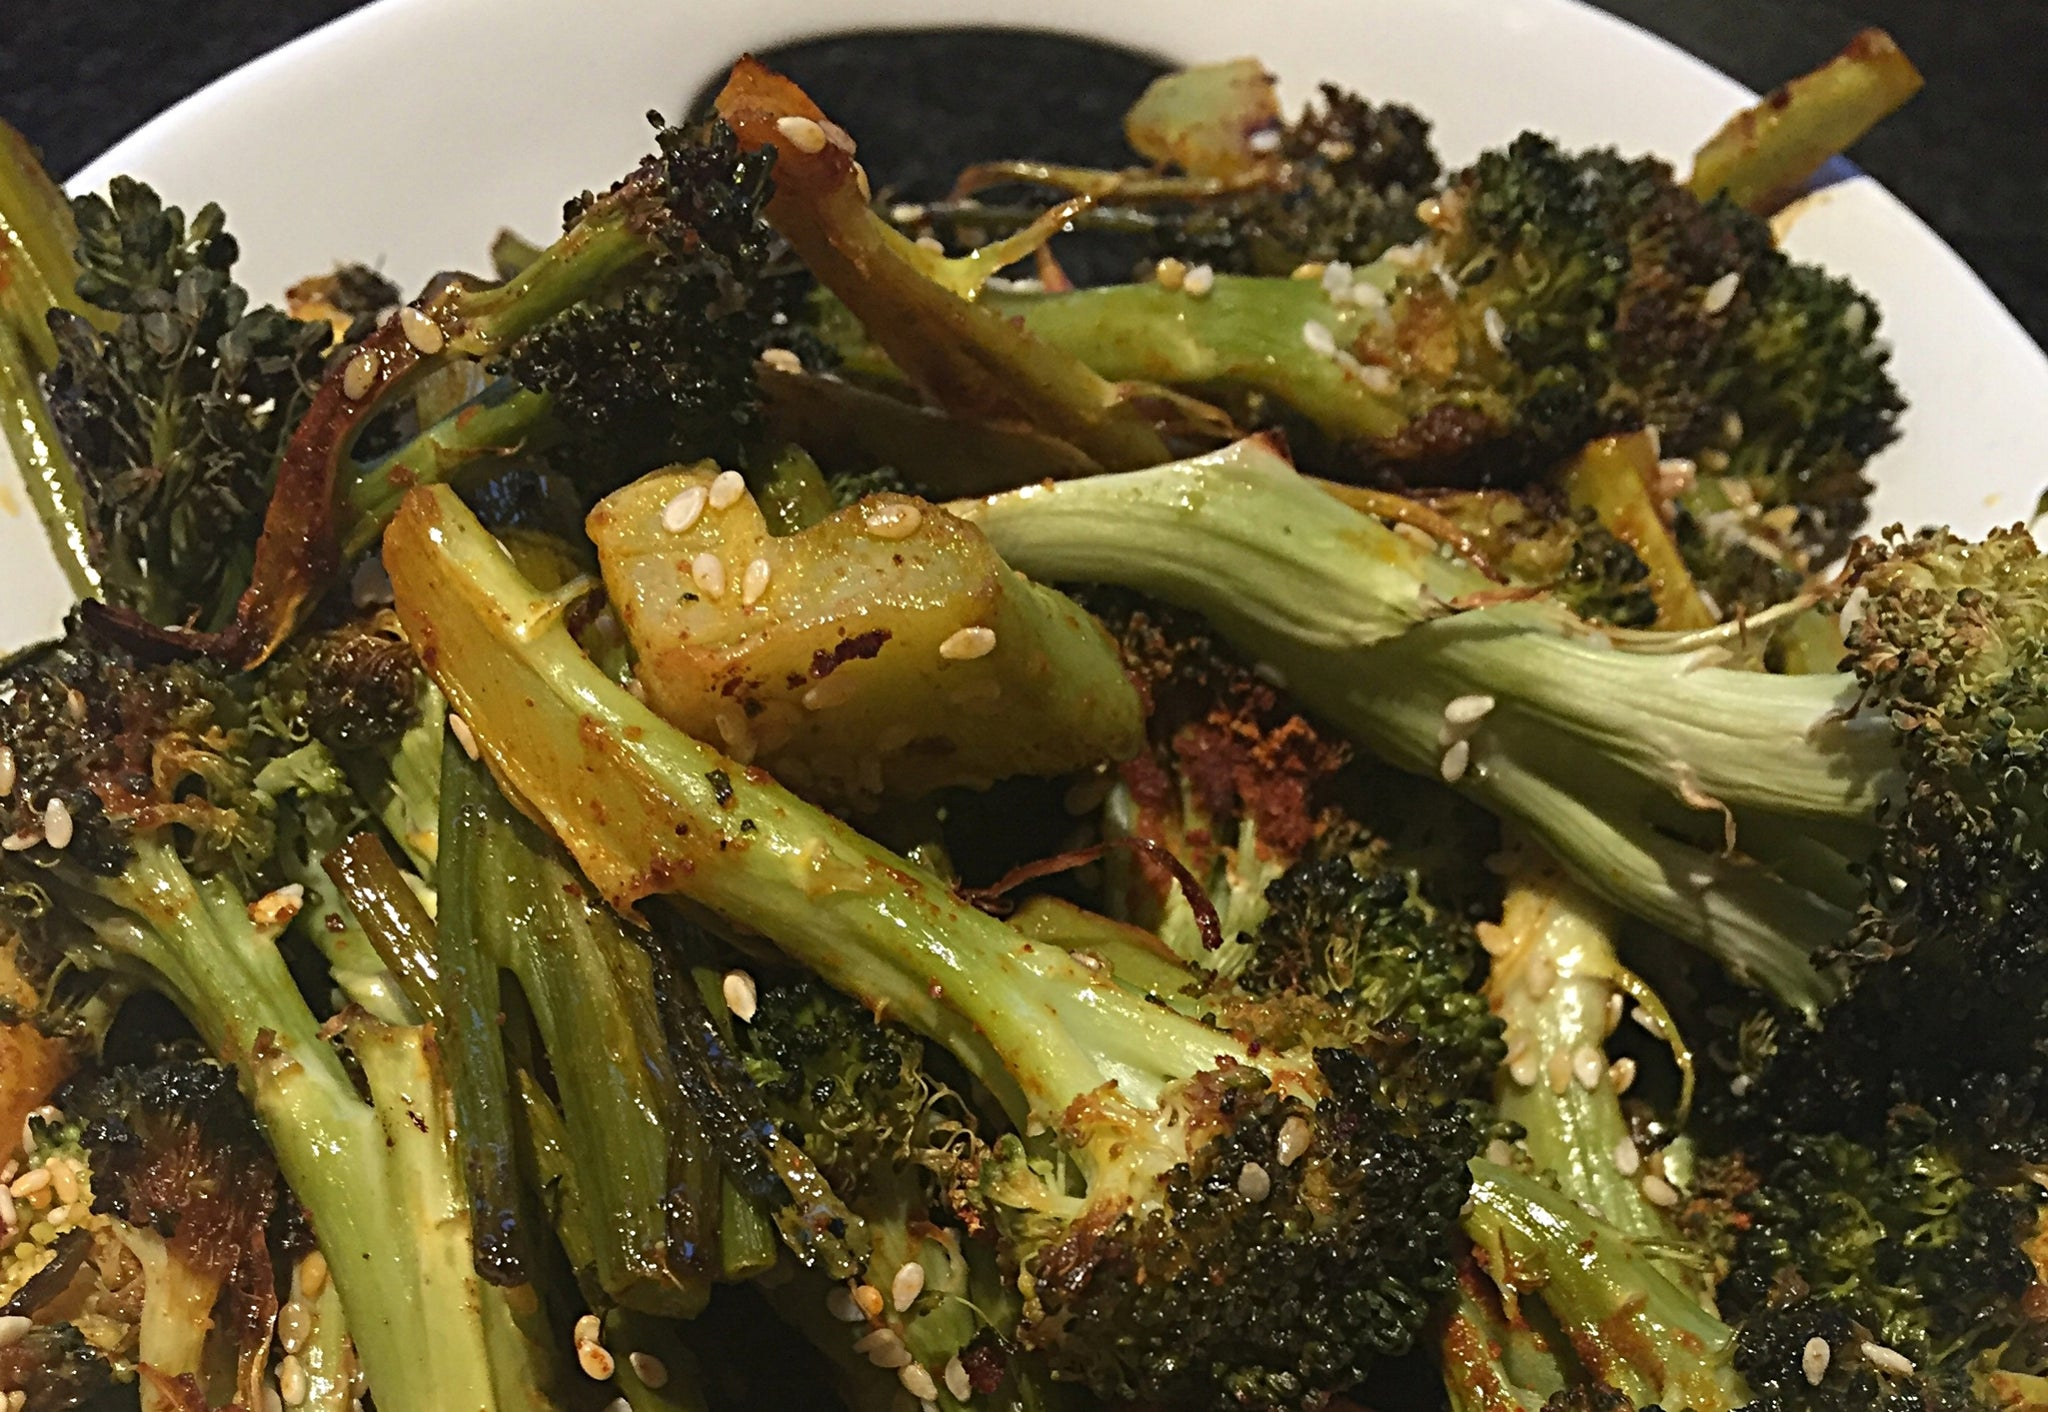 Roasted Broccoli, Magically Spiced